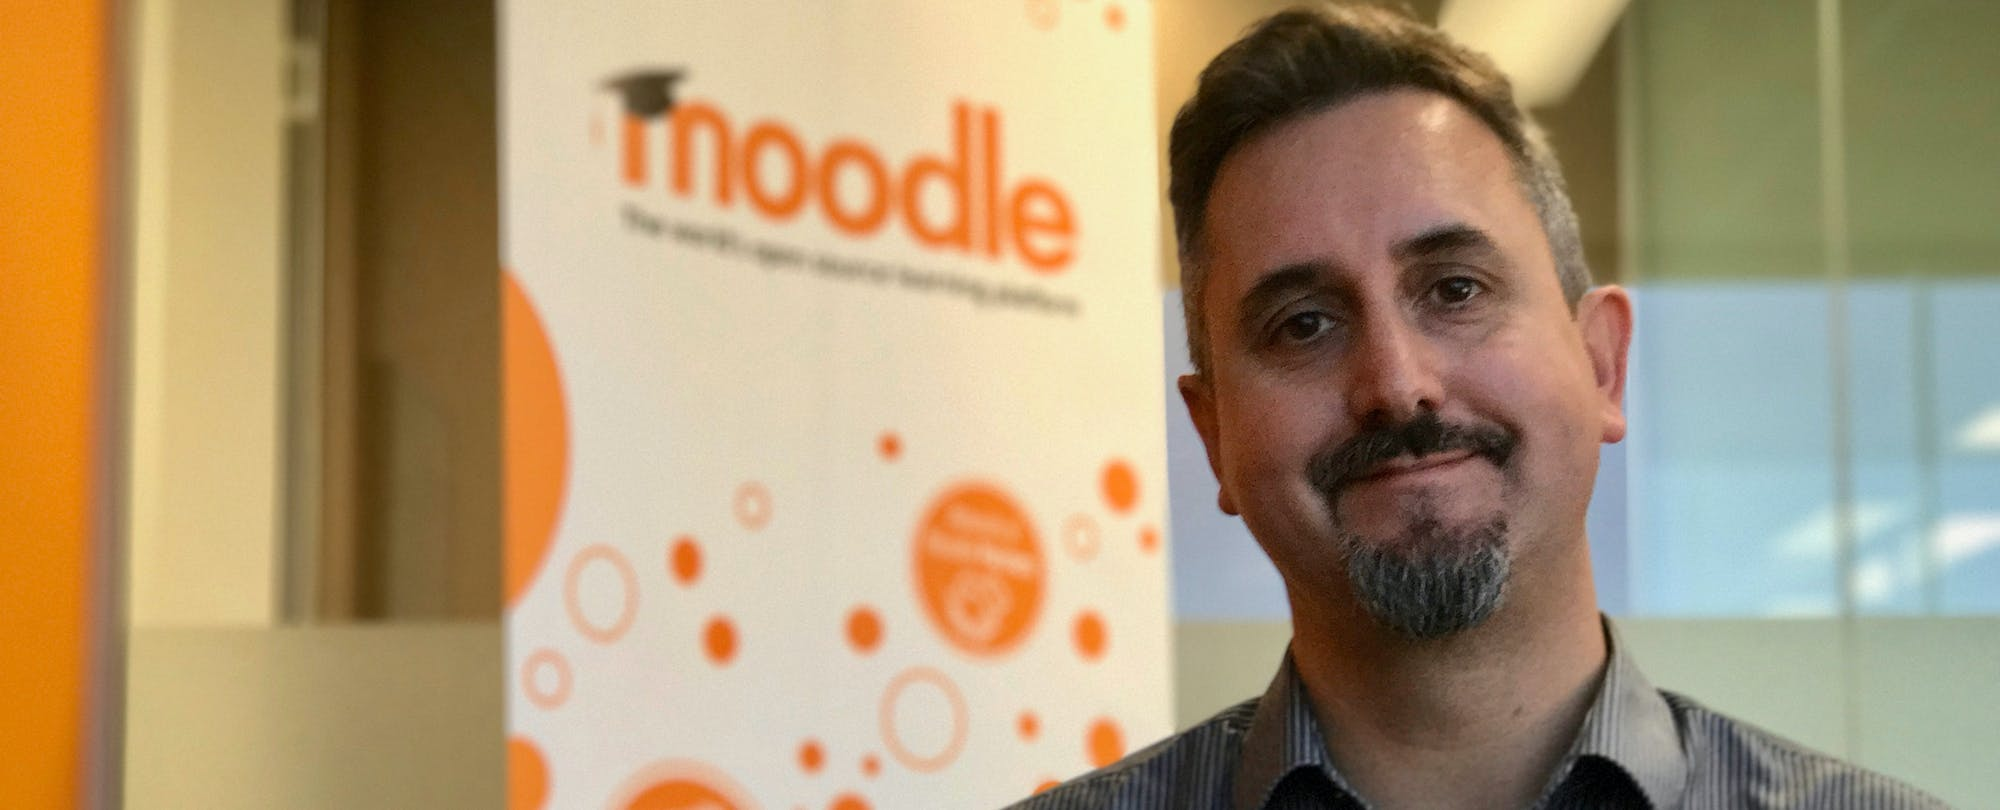 Why Moodle's Mastermind, Martin Dougiamas, Still Believes in Edtech After Two Decades